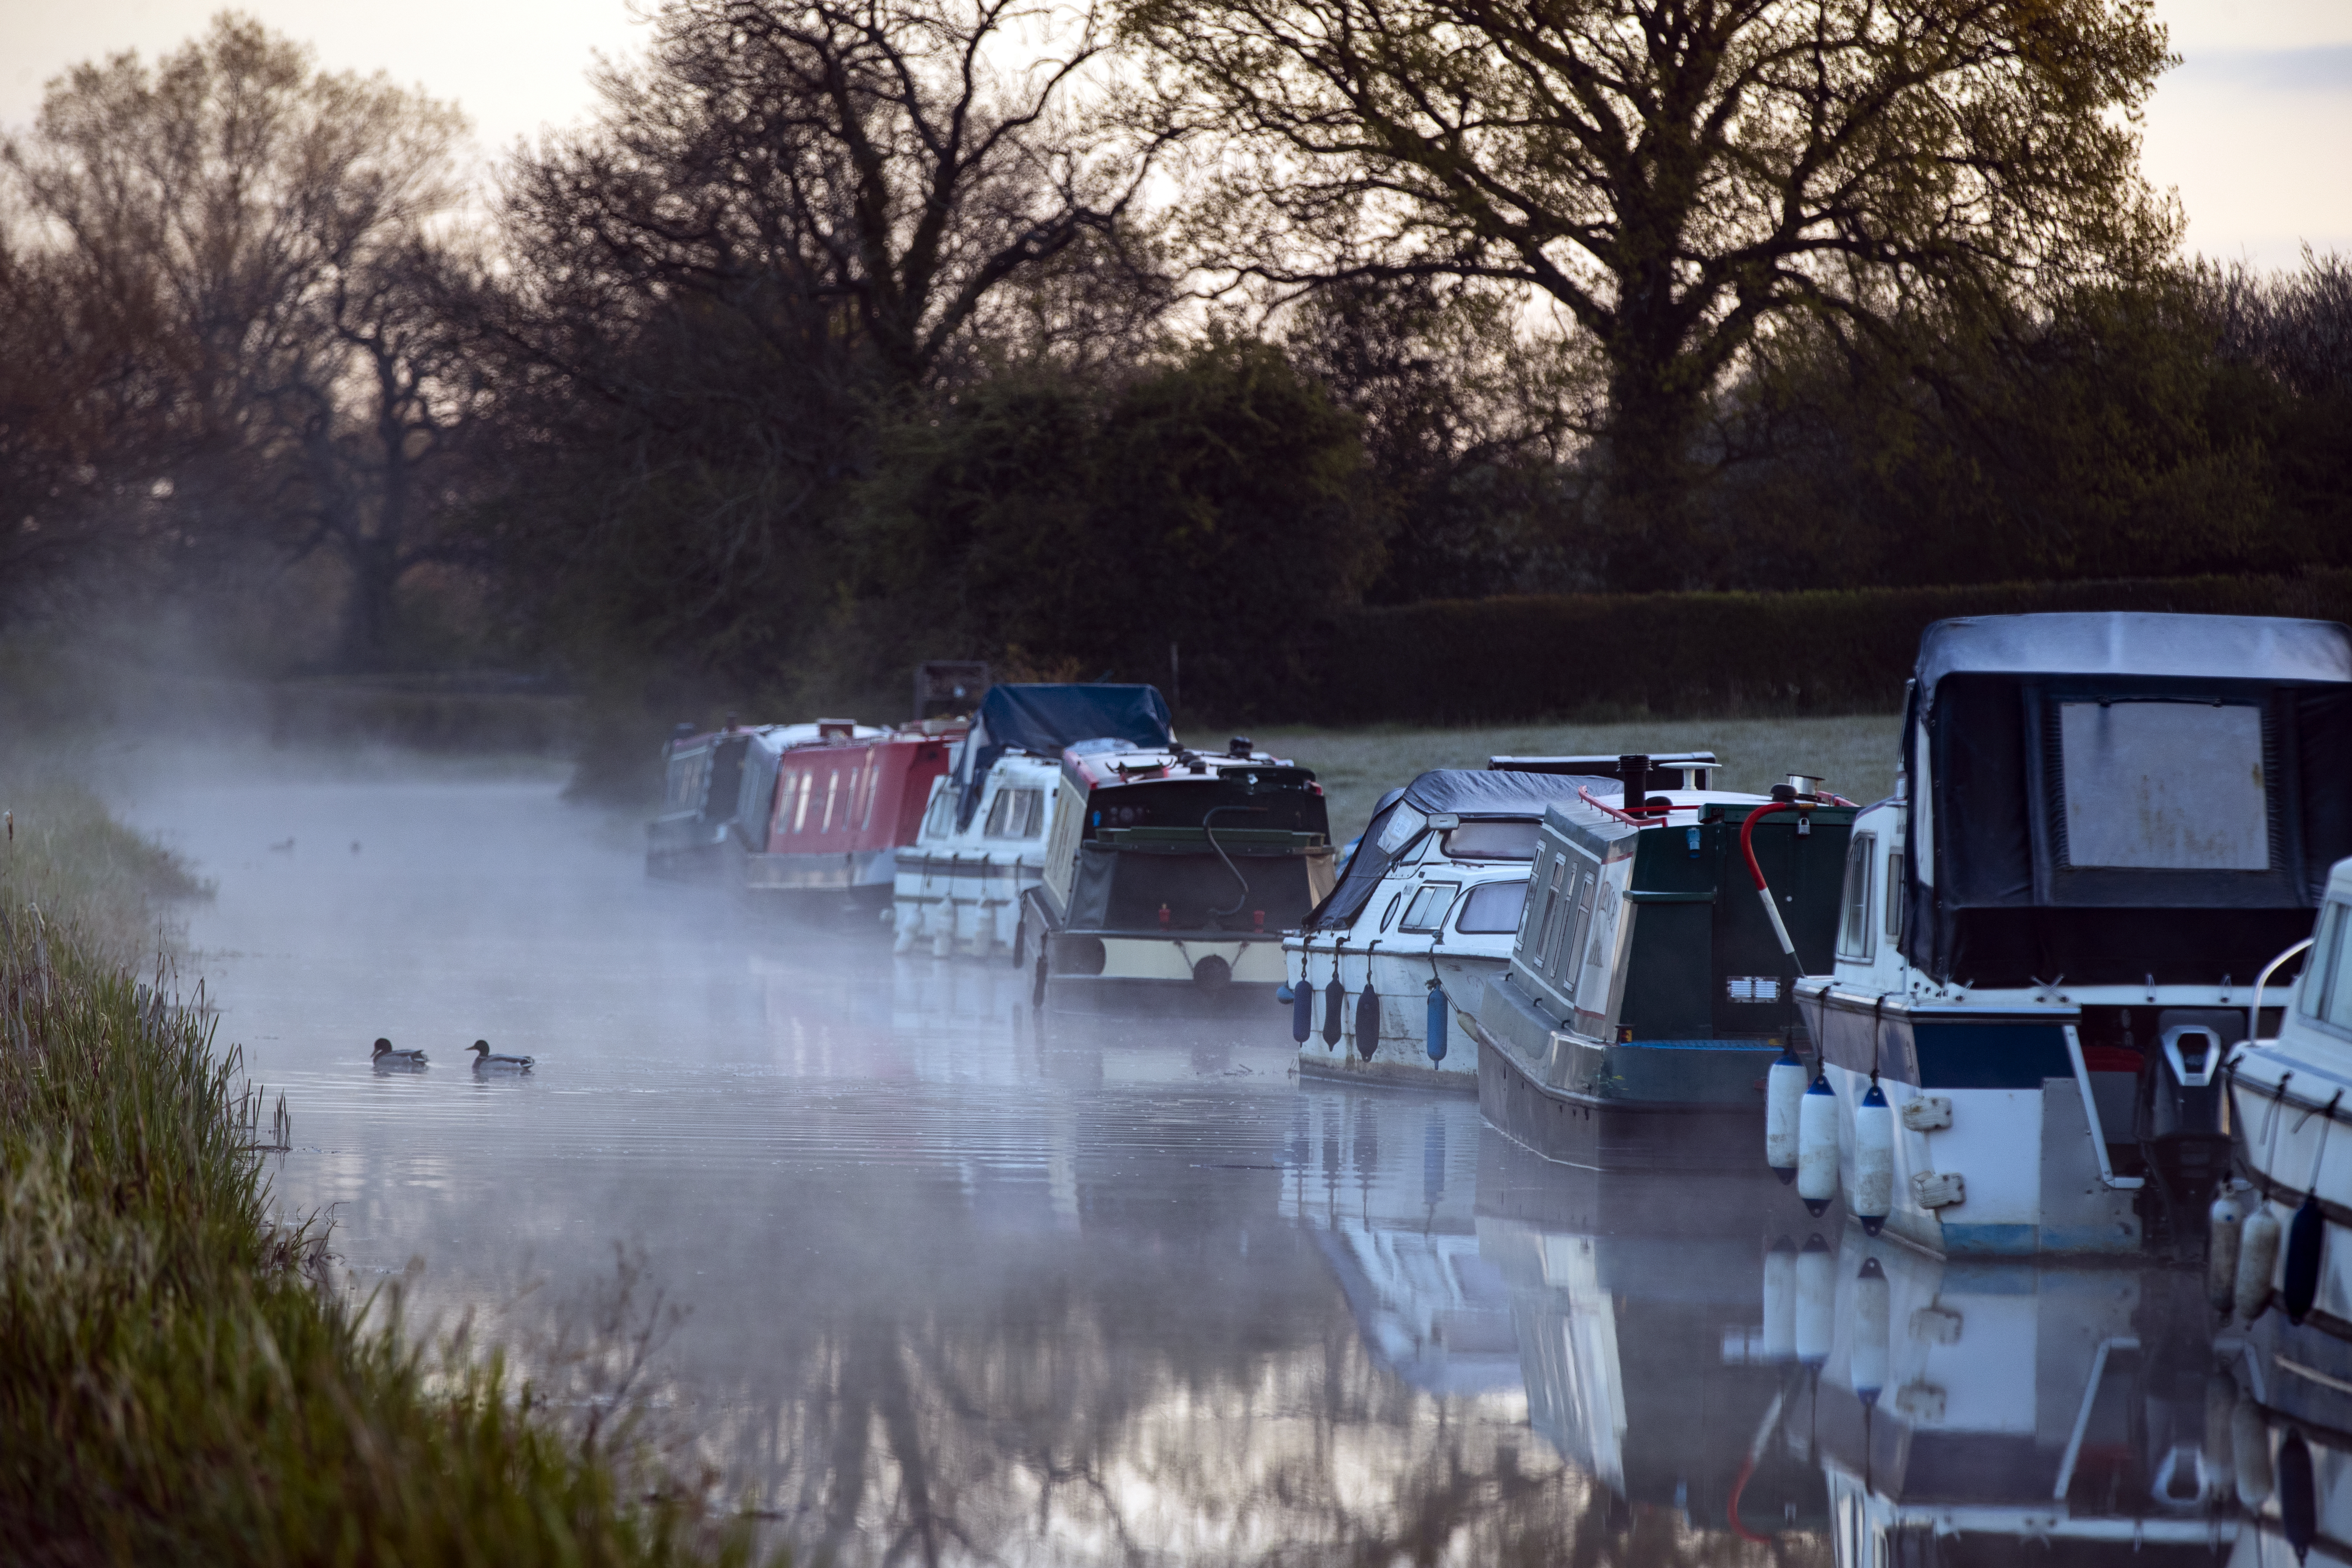 <p>Mist rises on the canal at Biddulph in Staffordshire. Picture date: Monday April 26, 2021.</p>